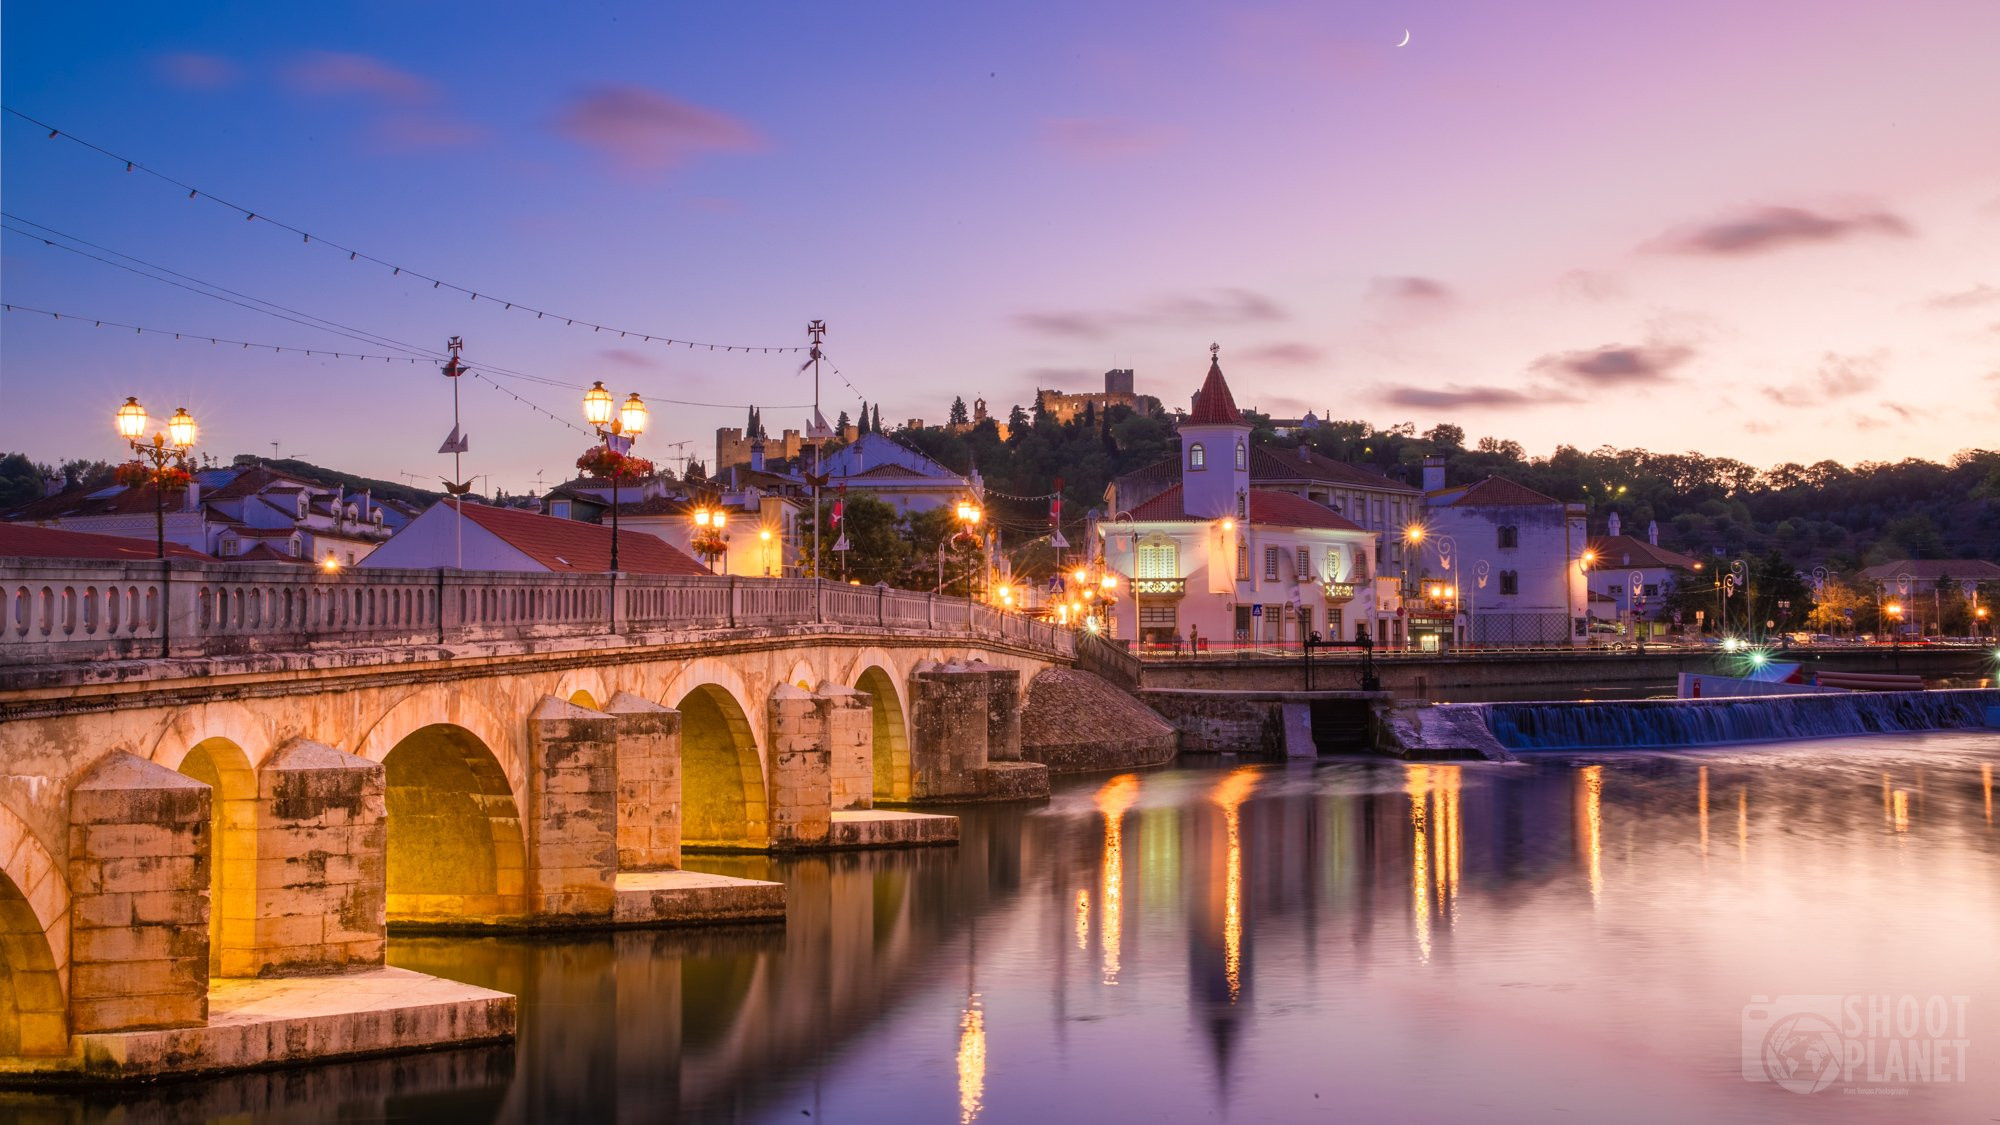 Tomar old town and bridge sunset, Portugal